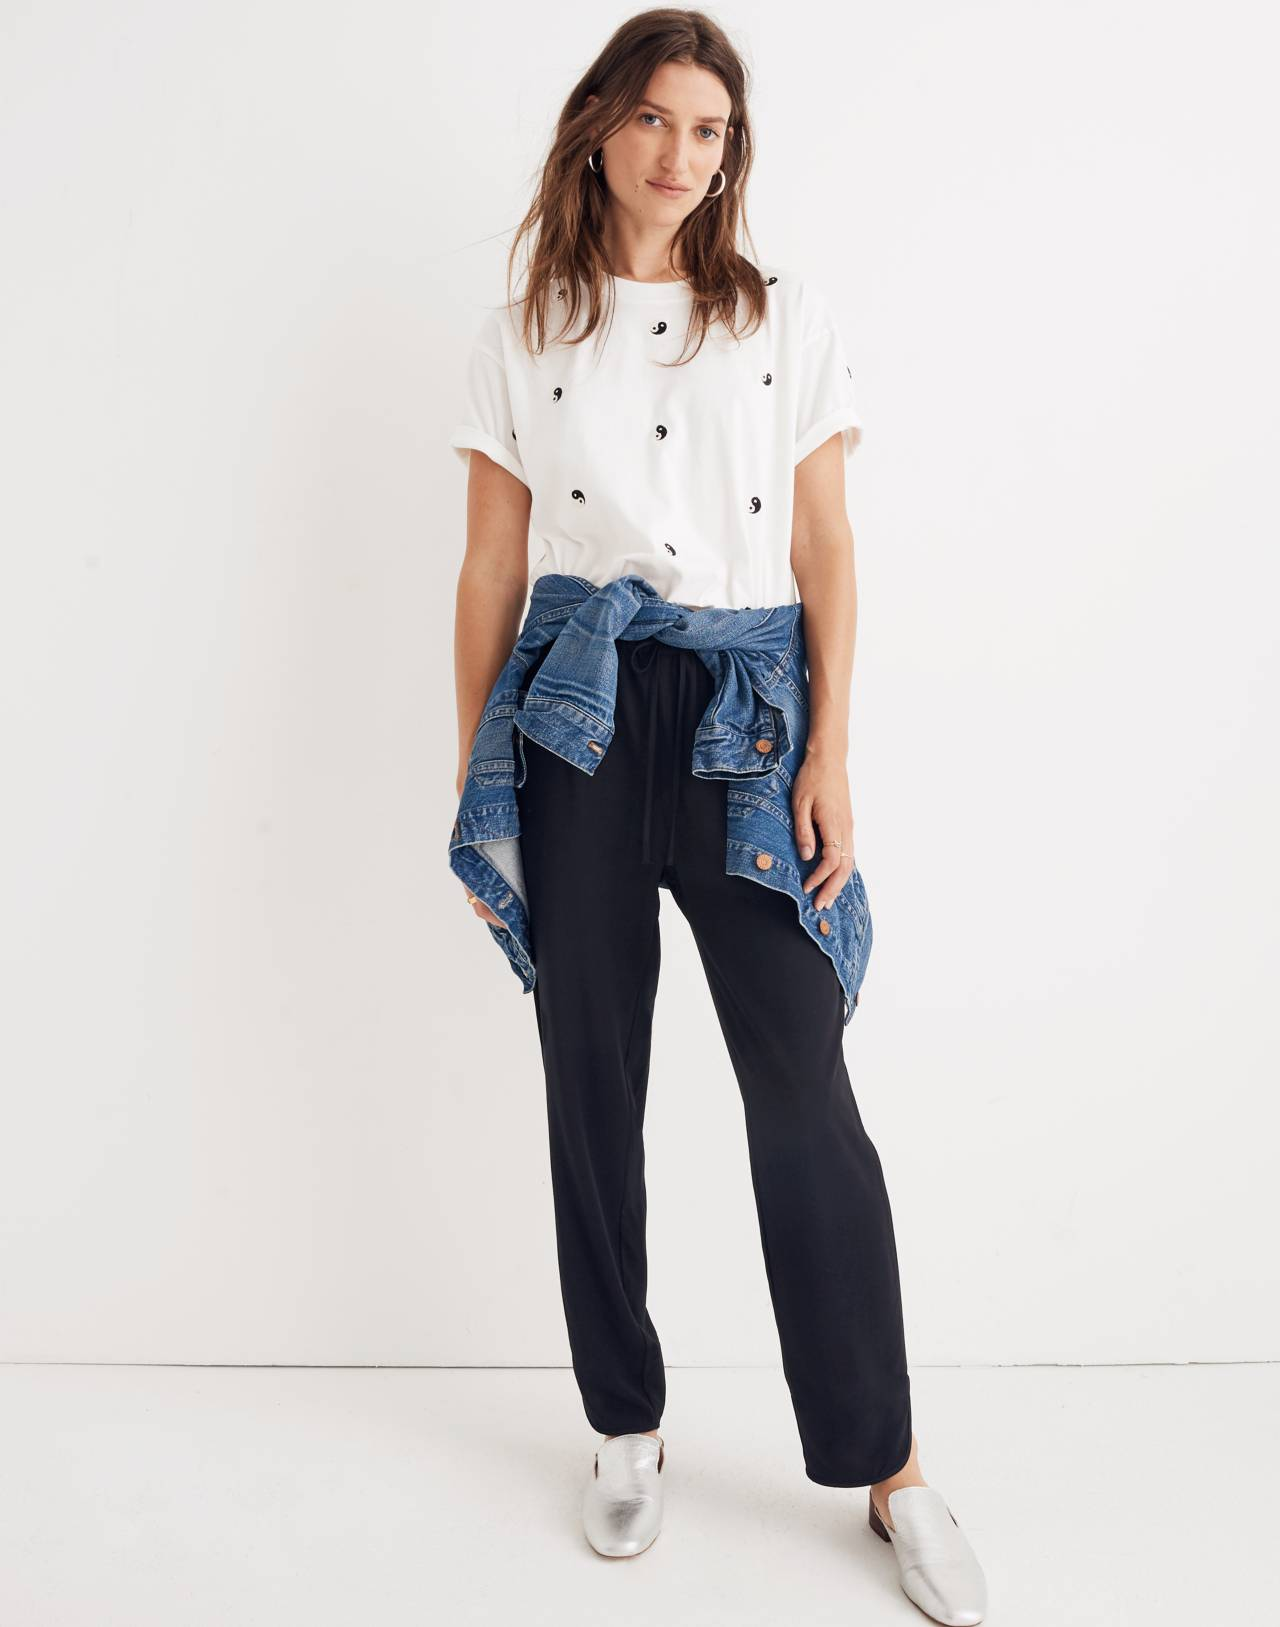 Embroidered Yin-Yang Easy Crop Tee in yin white wash image 2